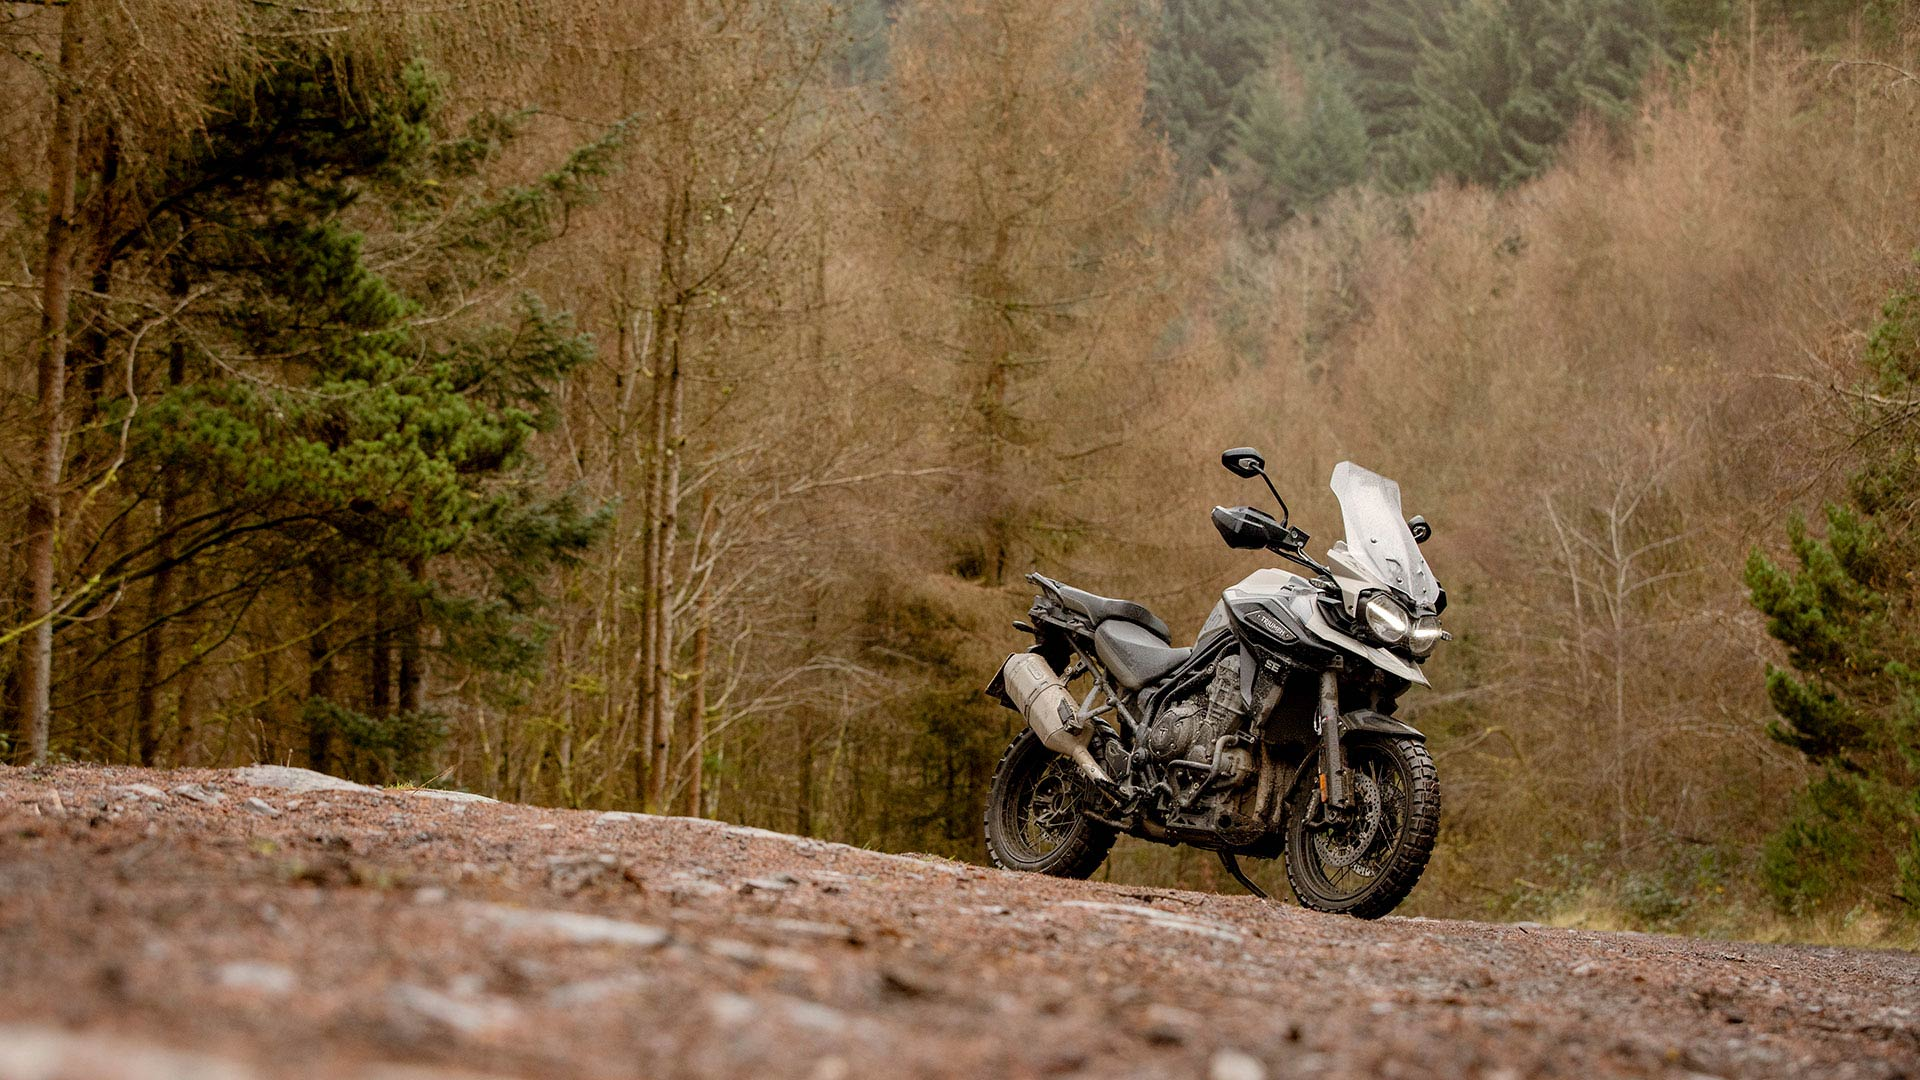 Scenic shot of the Triumph Tiger 1200 Desert in Sandstorm paint scheme